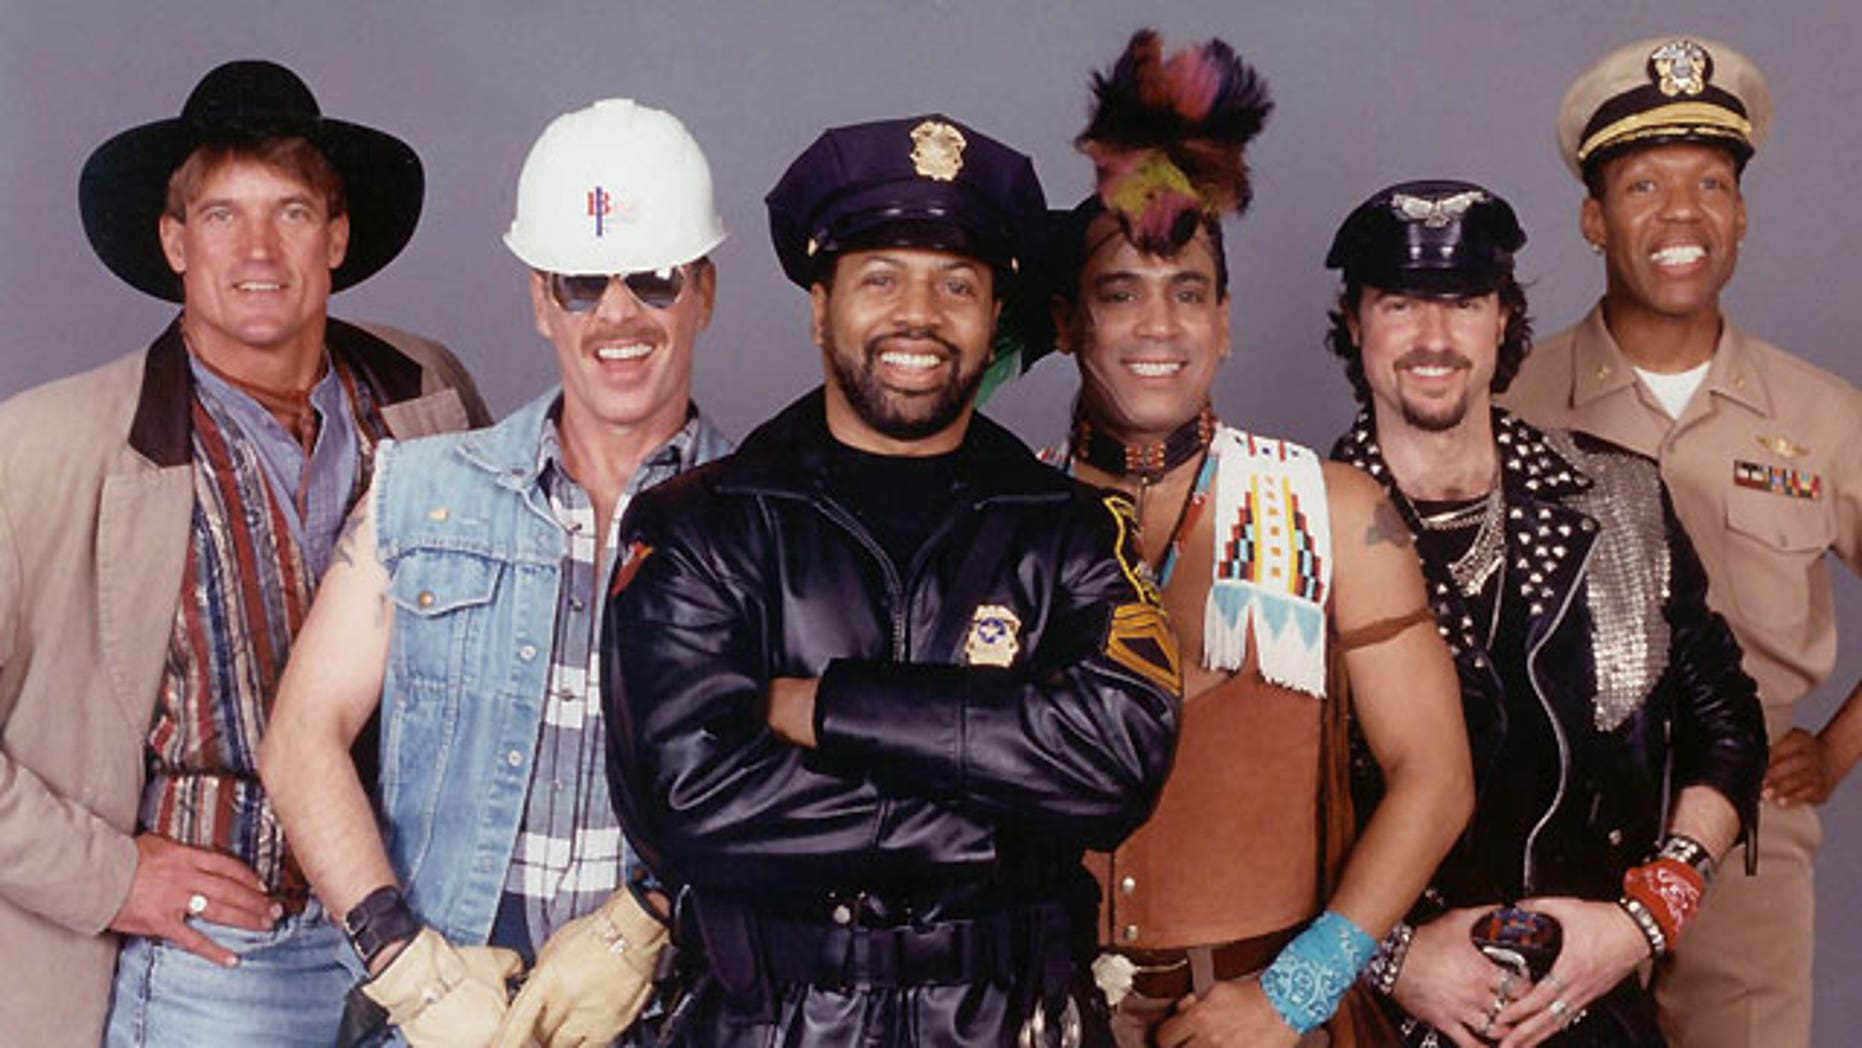 The Village People